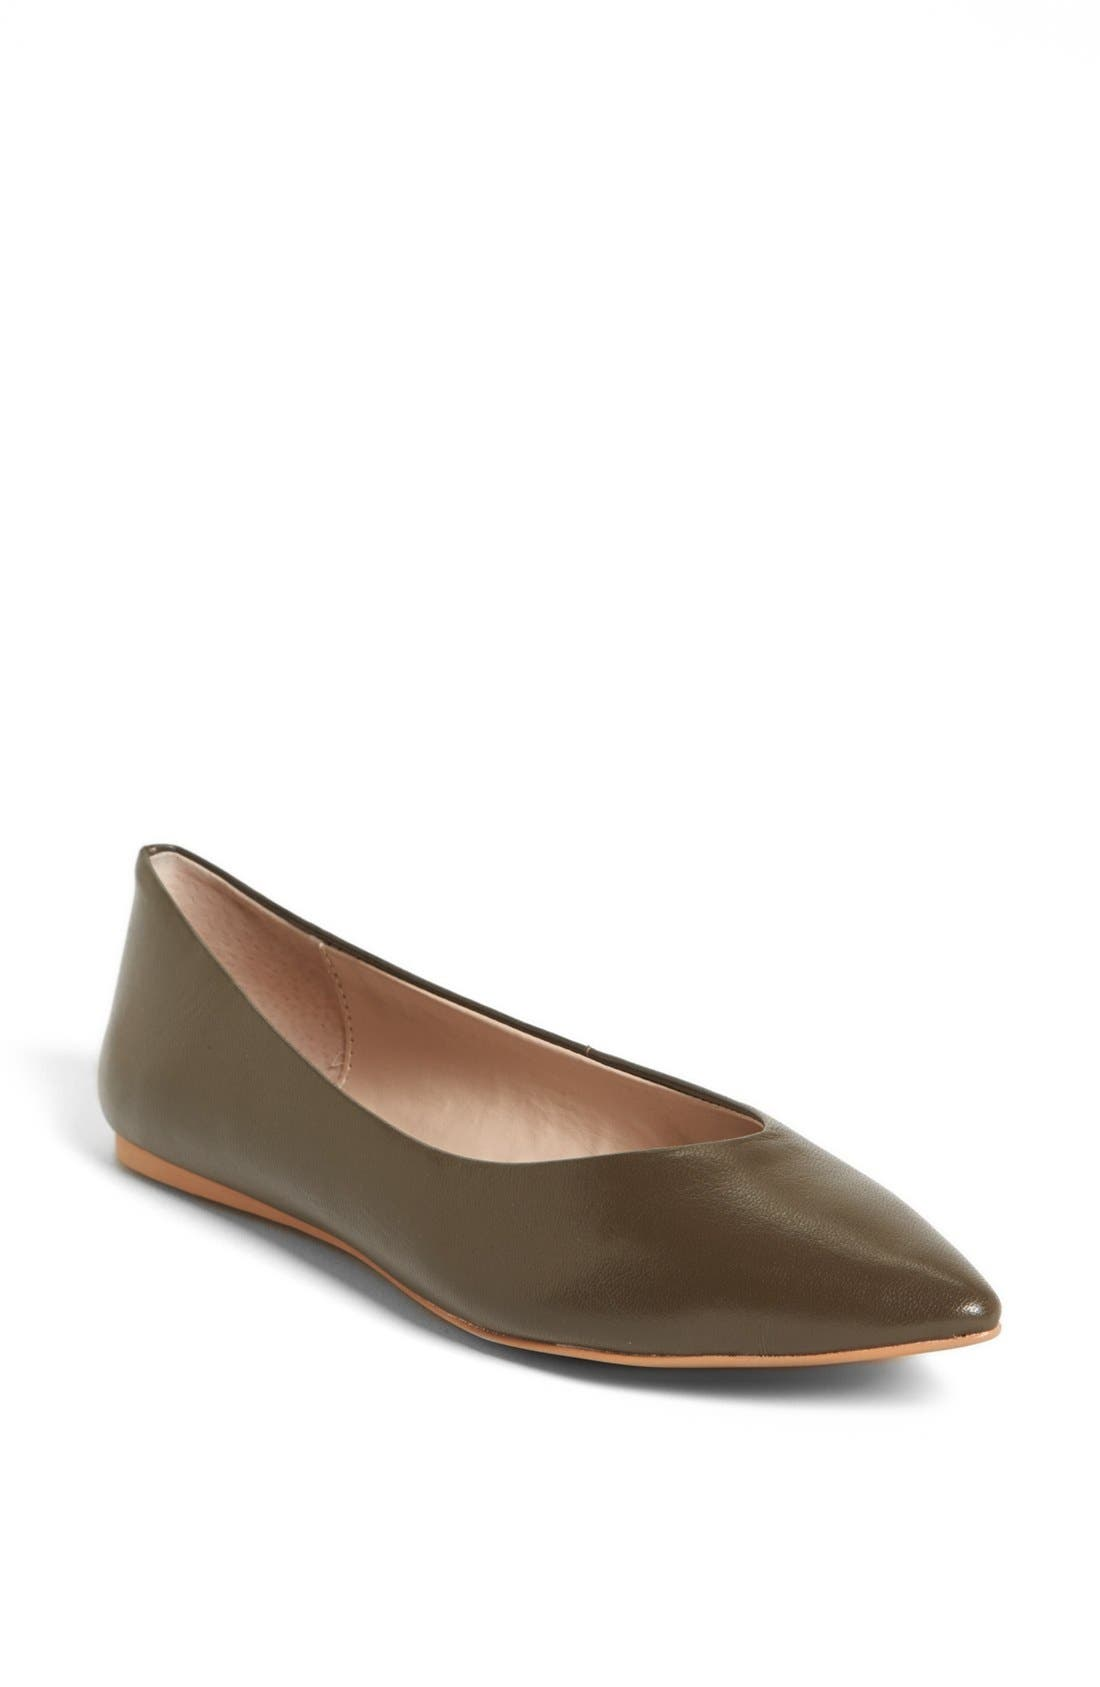 Alternate Image 1 Selected - Steven by Steve Madden 'Elatedd' Pointed Toe Flat